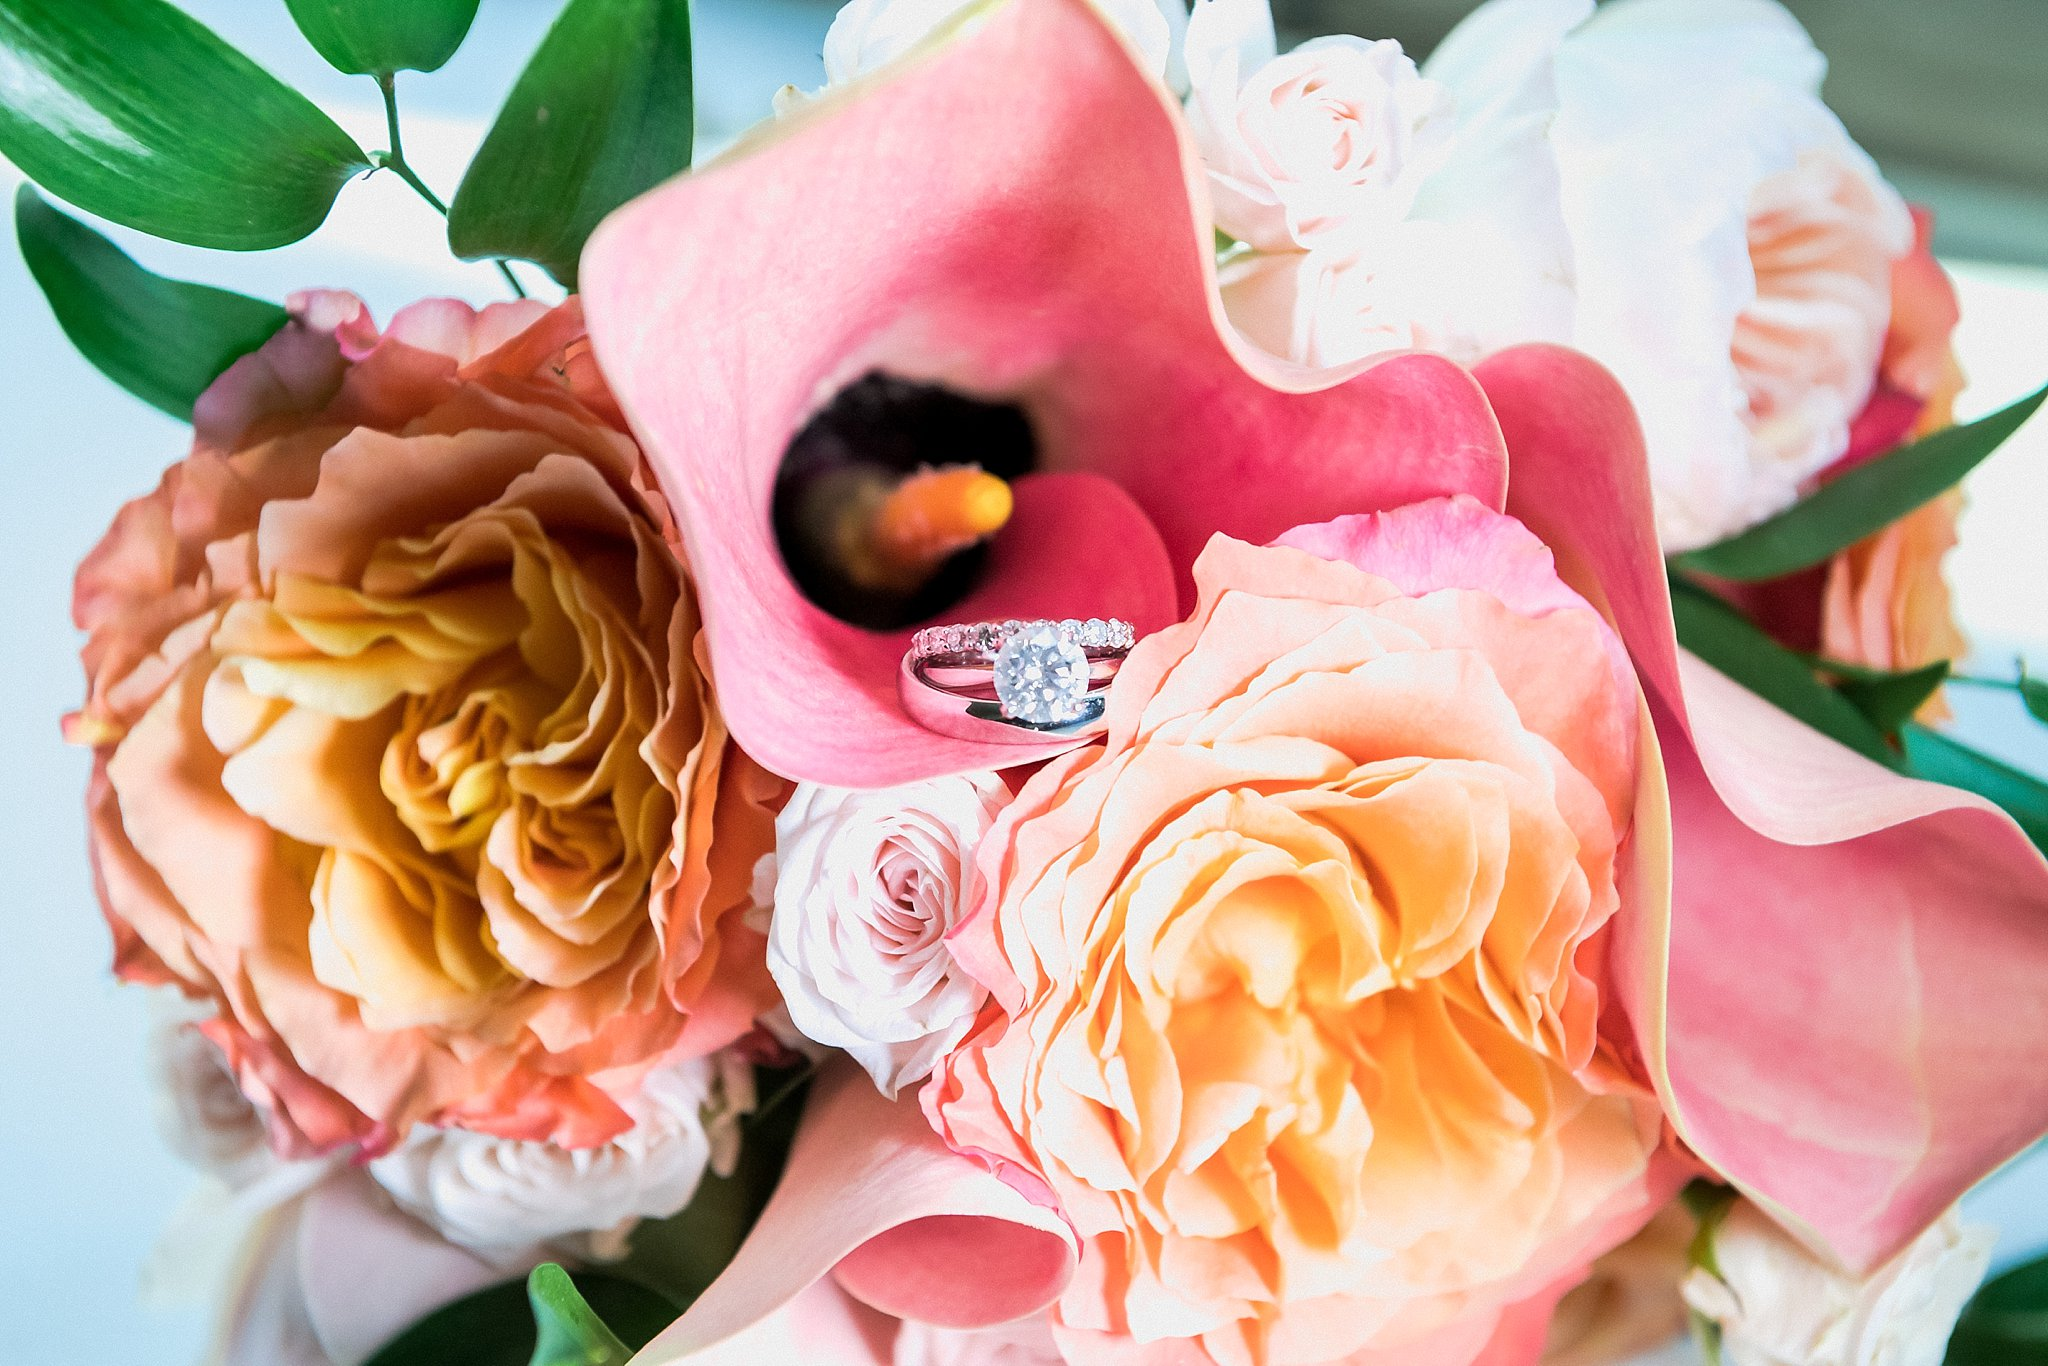 Bride Ring with a bouquet